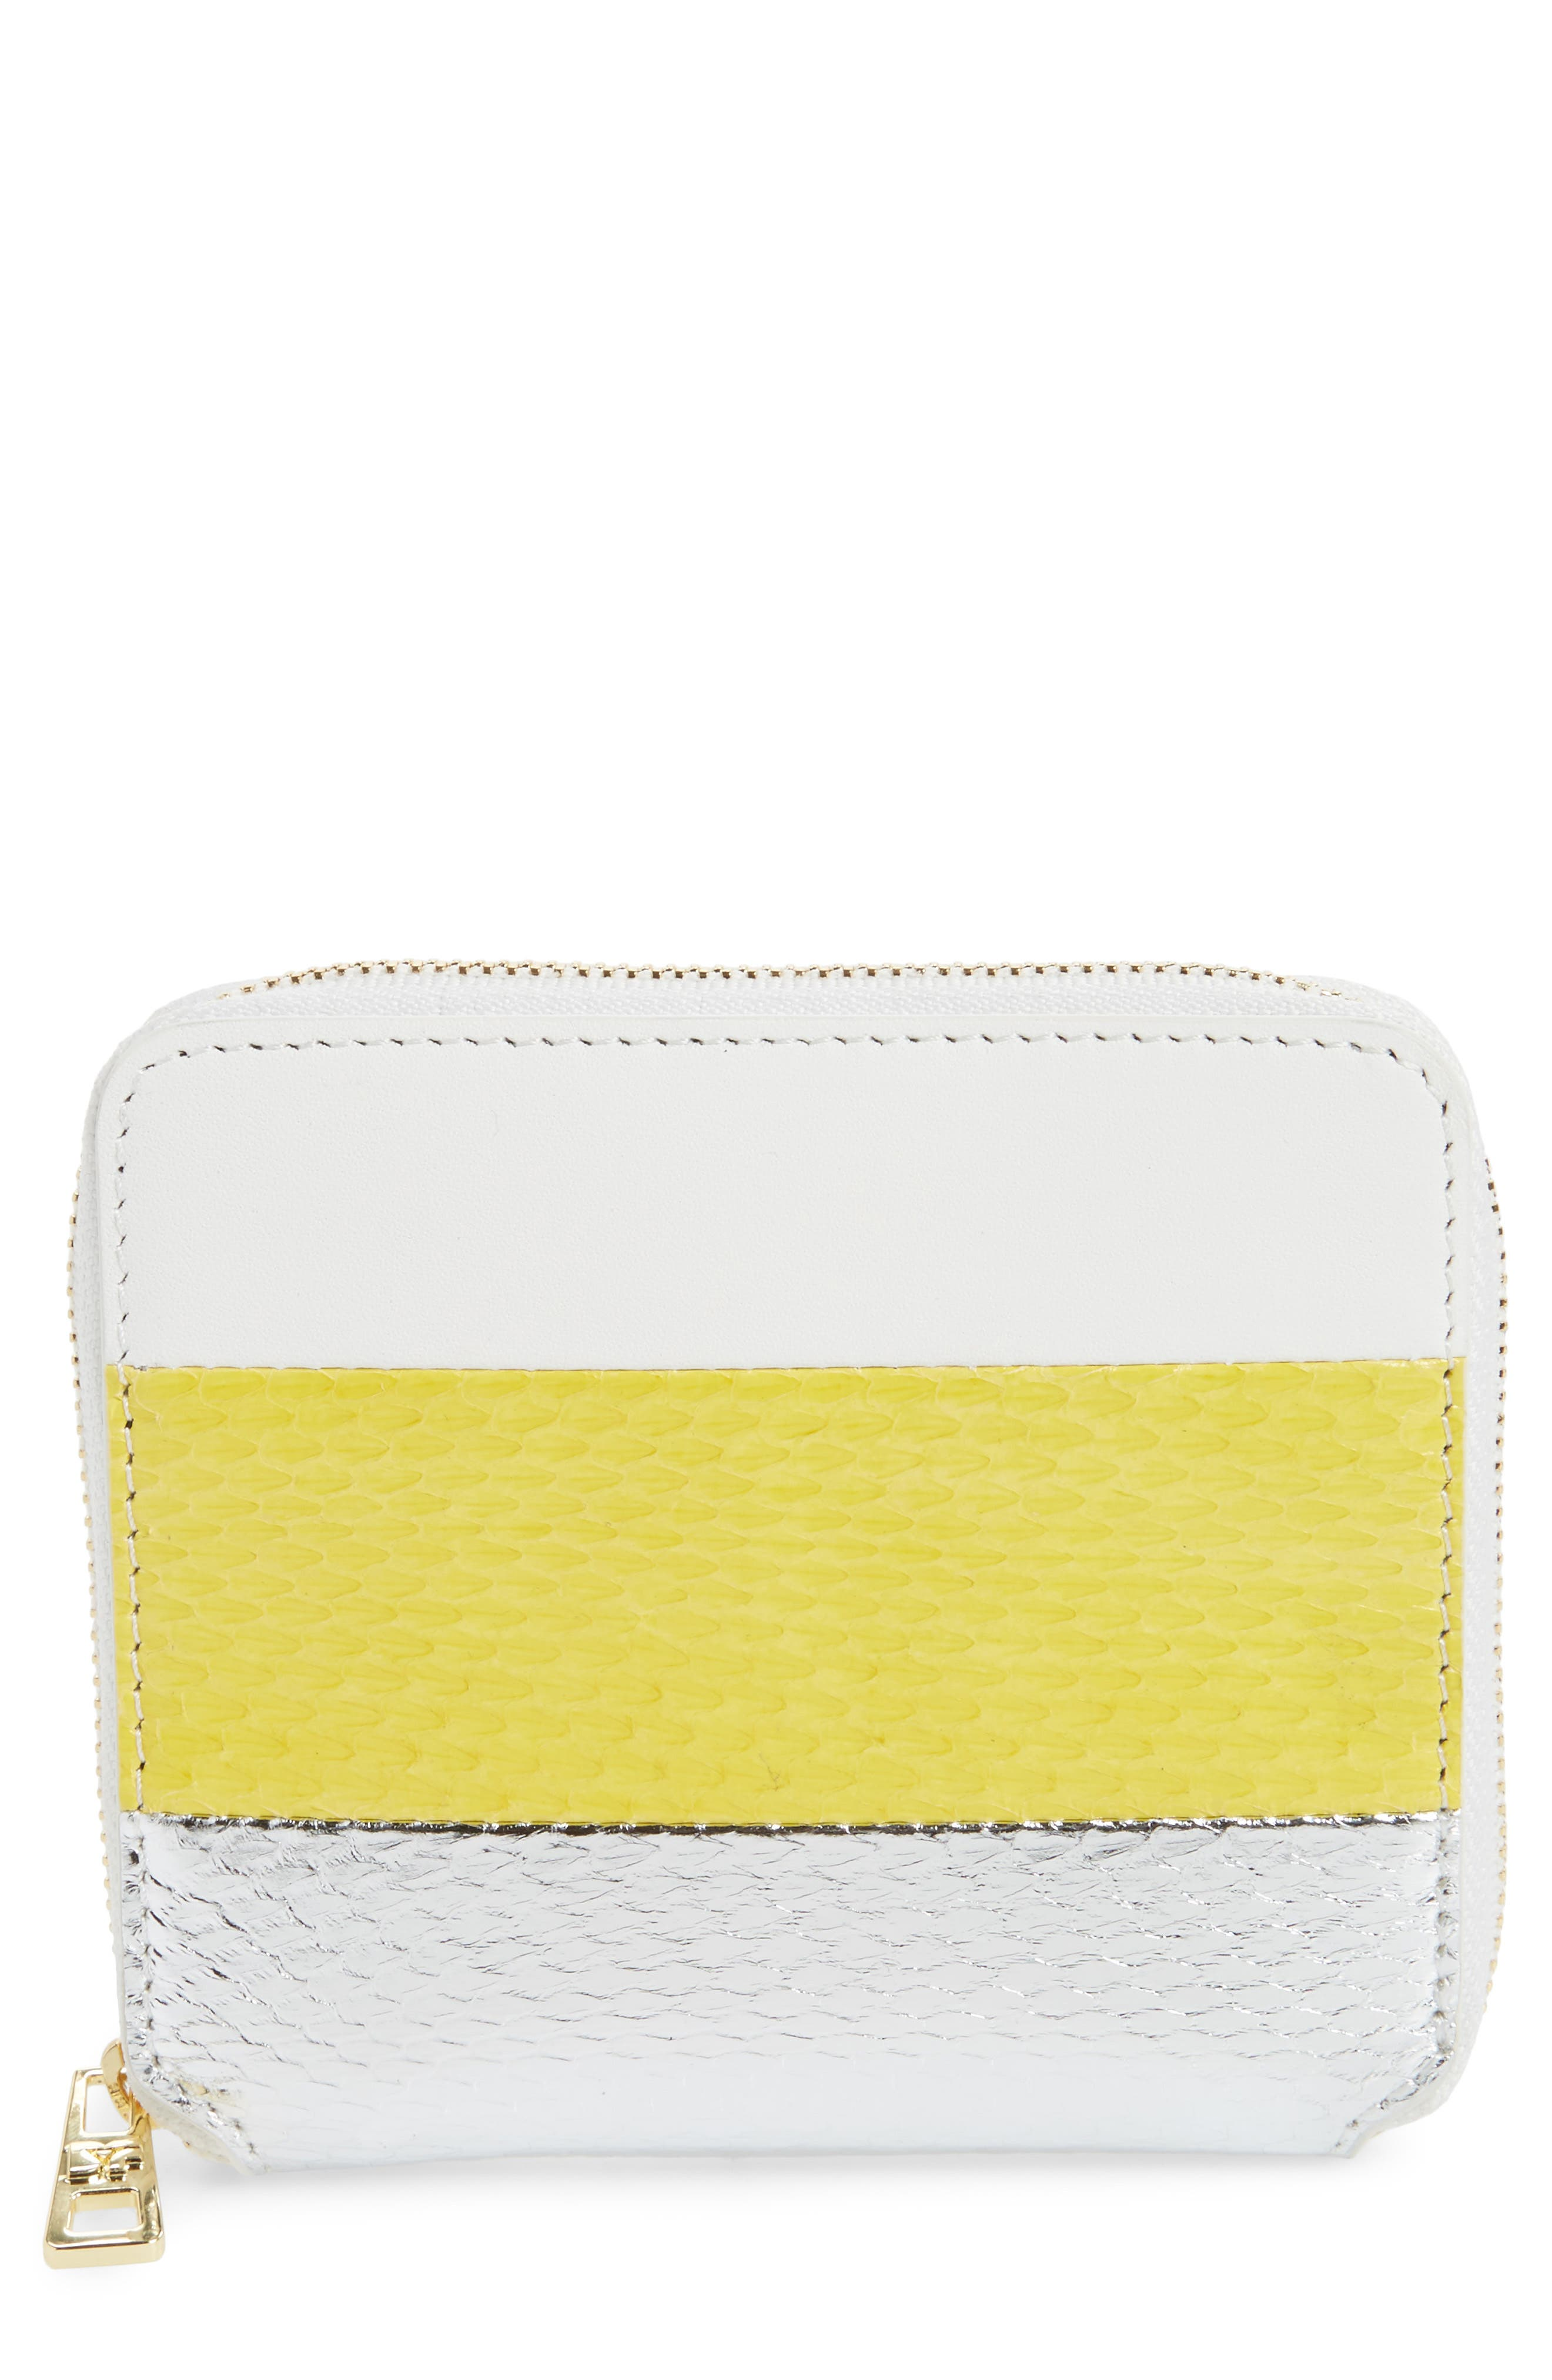 Small Leather & Genuine Snakeskin Zip Wallet,                         Main,                         color, 700